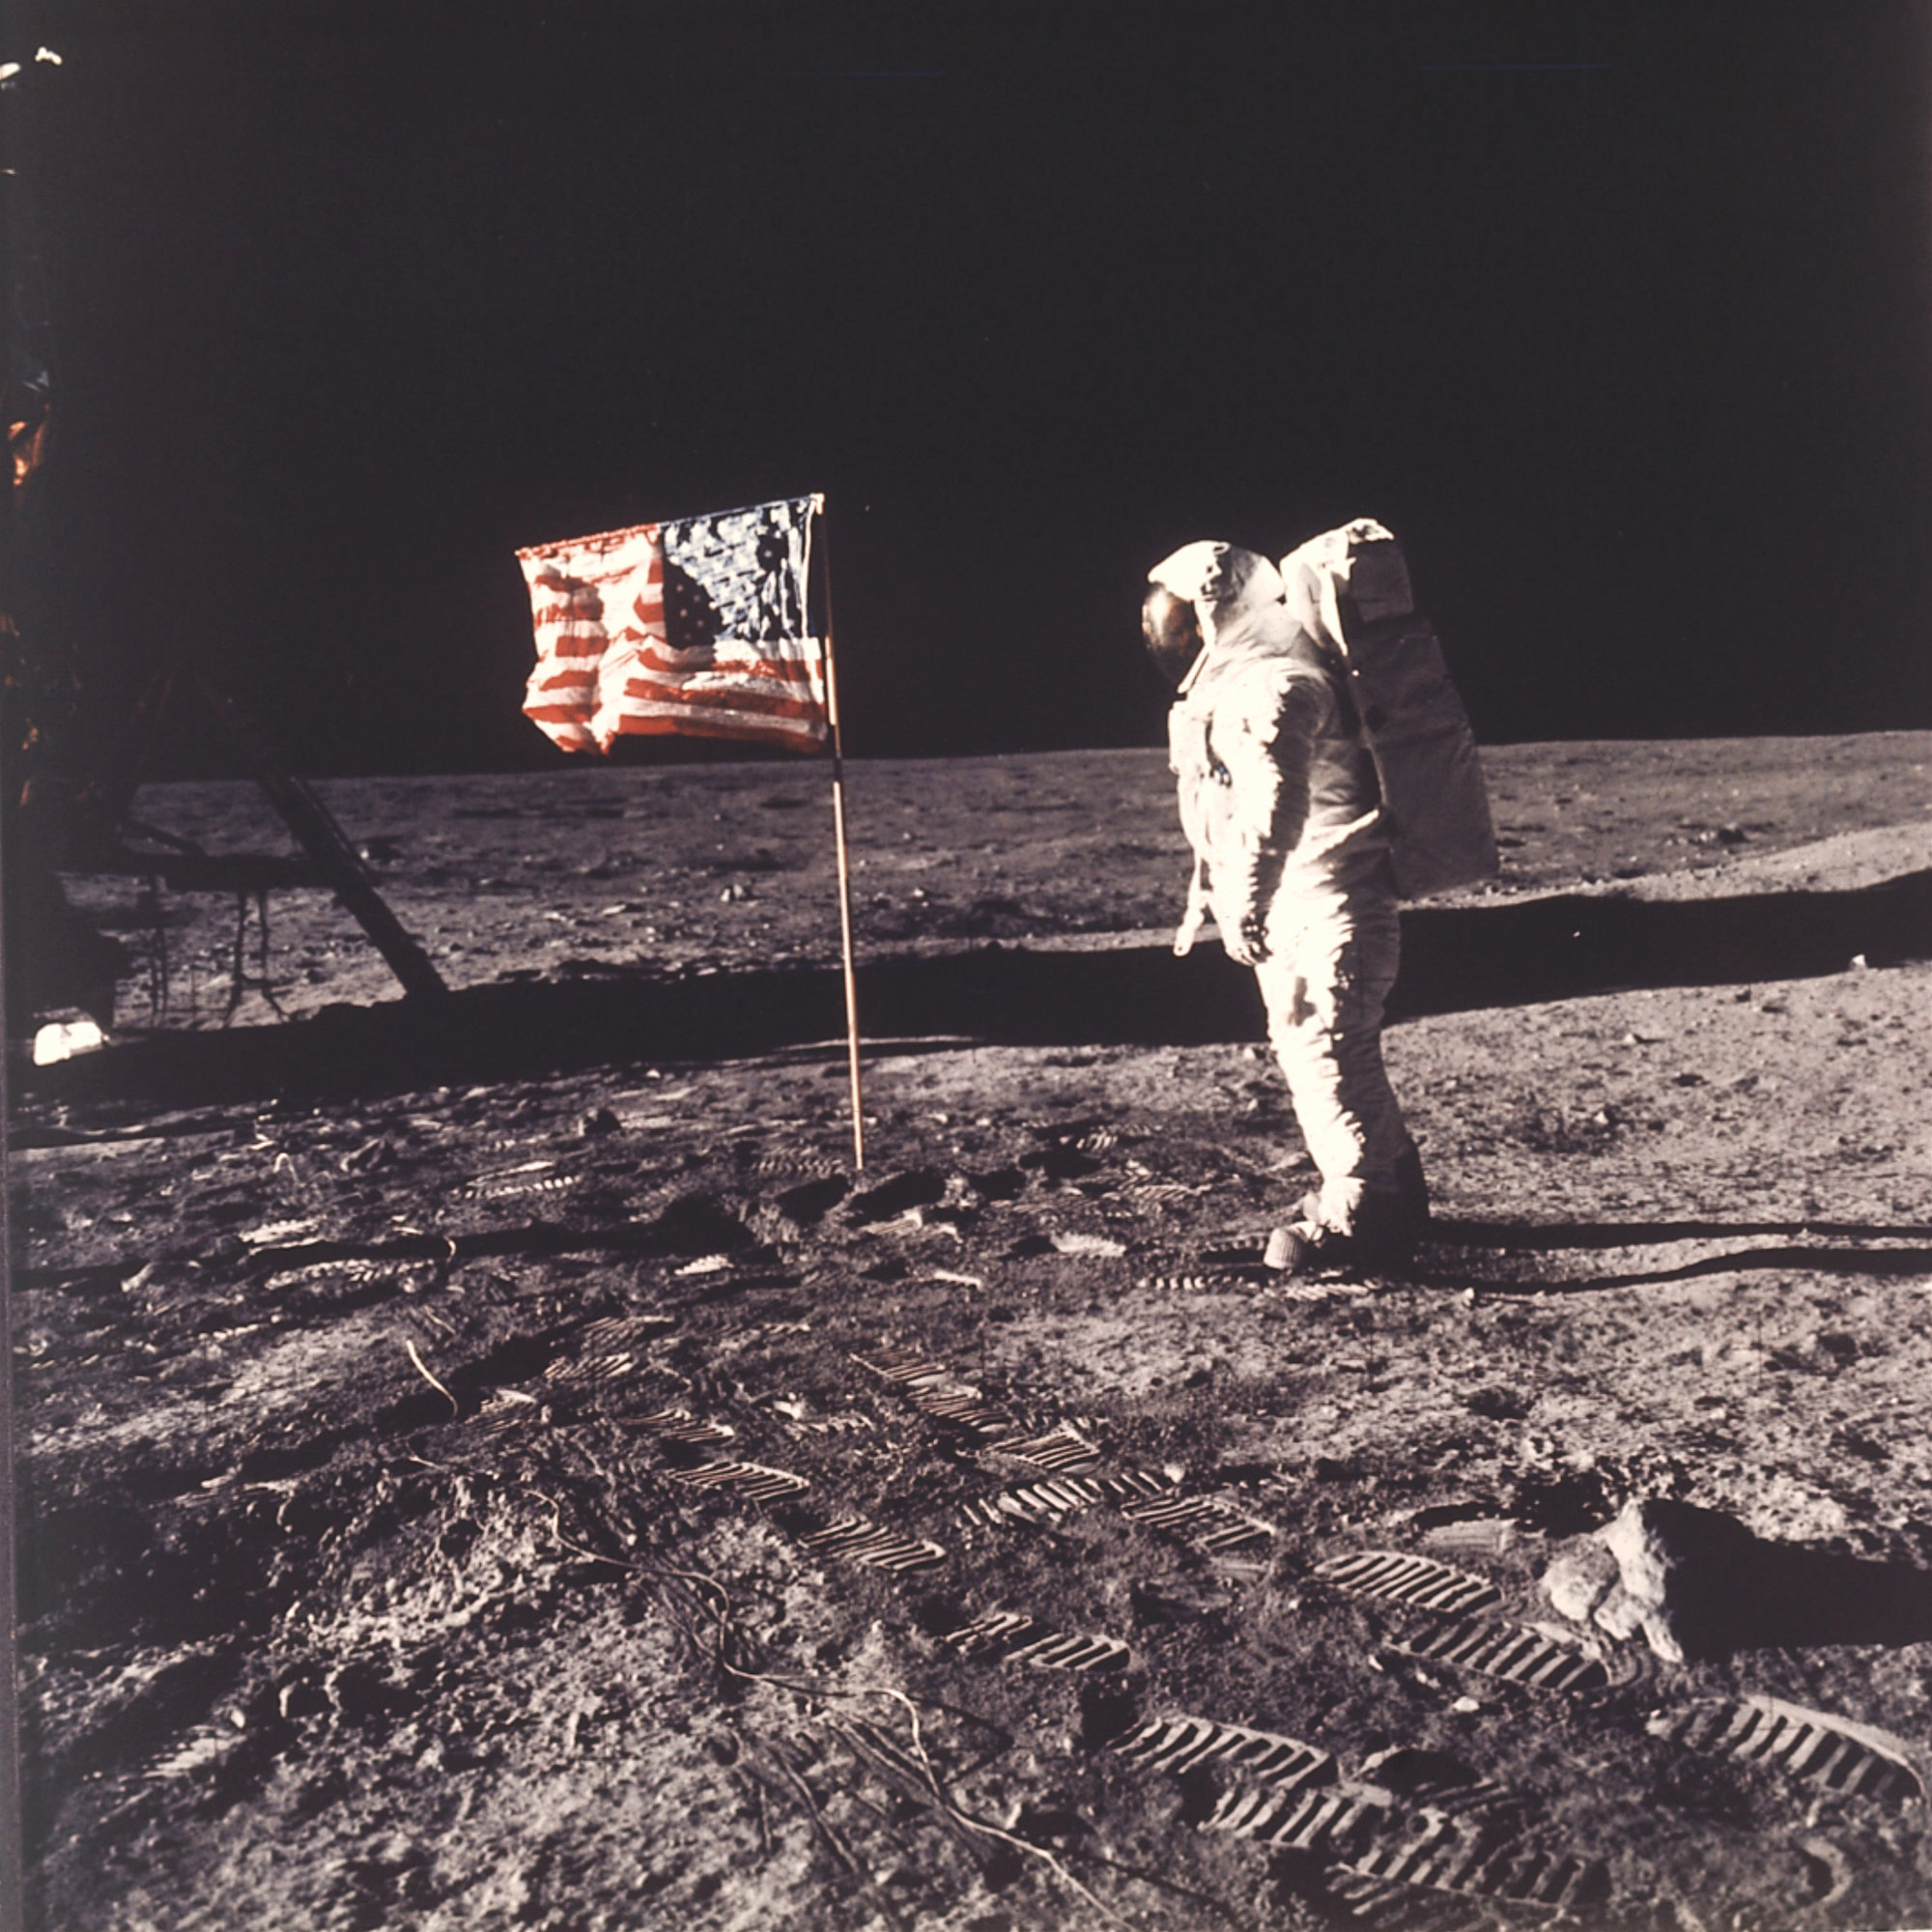 In this July 20, 1969, photo made available by NASA, astronaut Buzz Aldrin Jr. poses for a photograph beside the U.S. flag on the moon during the Apollo 11 mission. Aldrin and fellow astronaut Neil Armstrong were the first men to walk on the lunar surface with temperatures ranging from 243 degrees above to 279 degrees below zero. Astronaut Michael Collins flew the command module.